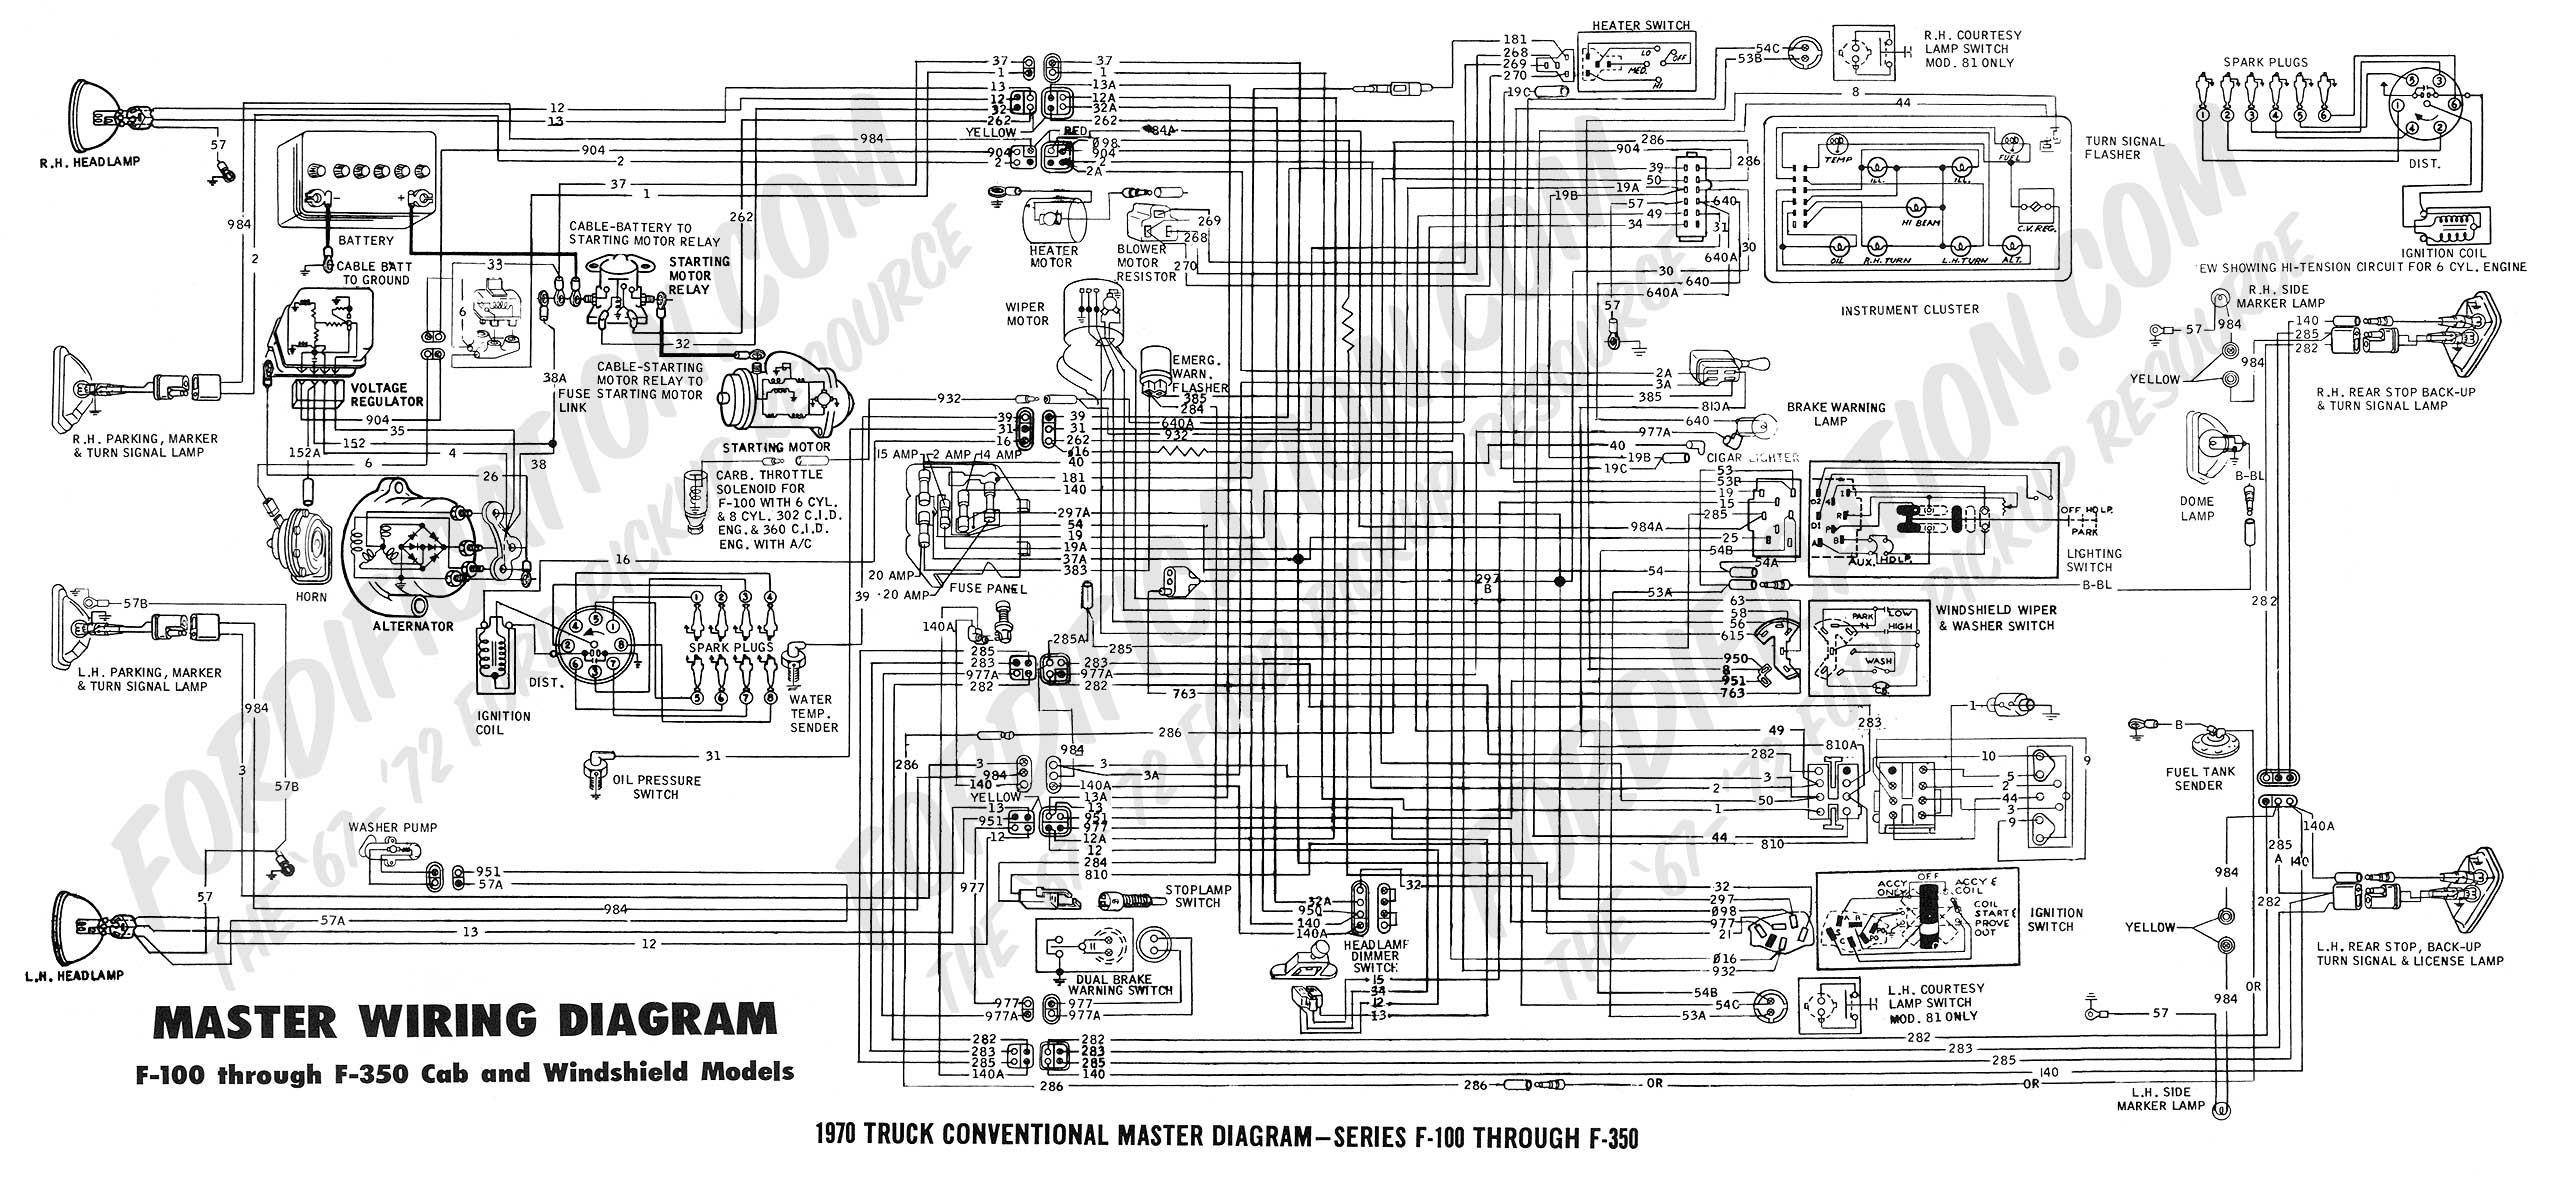 wiring diagram 70_master 1990 f150 wiring diagram 1990 f150 fuel wiring diagram \u2022 free 1990 toyota pickup charging wiring schematic at eliteediting.co